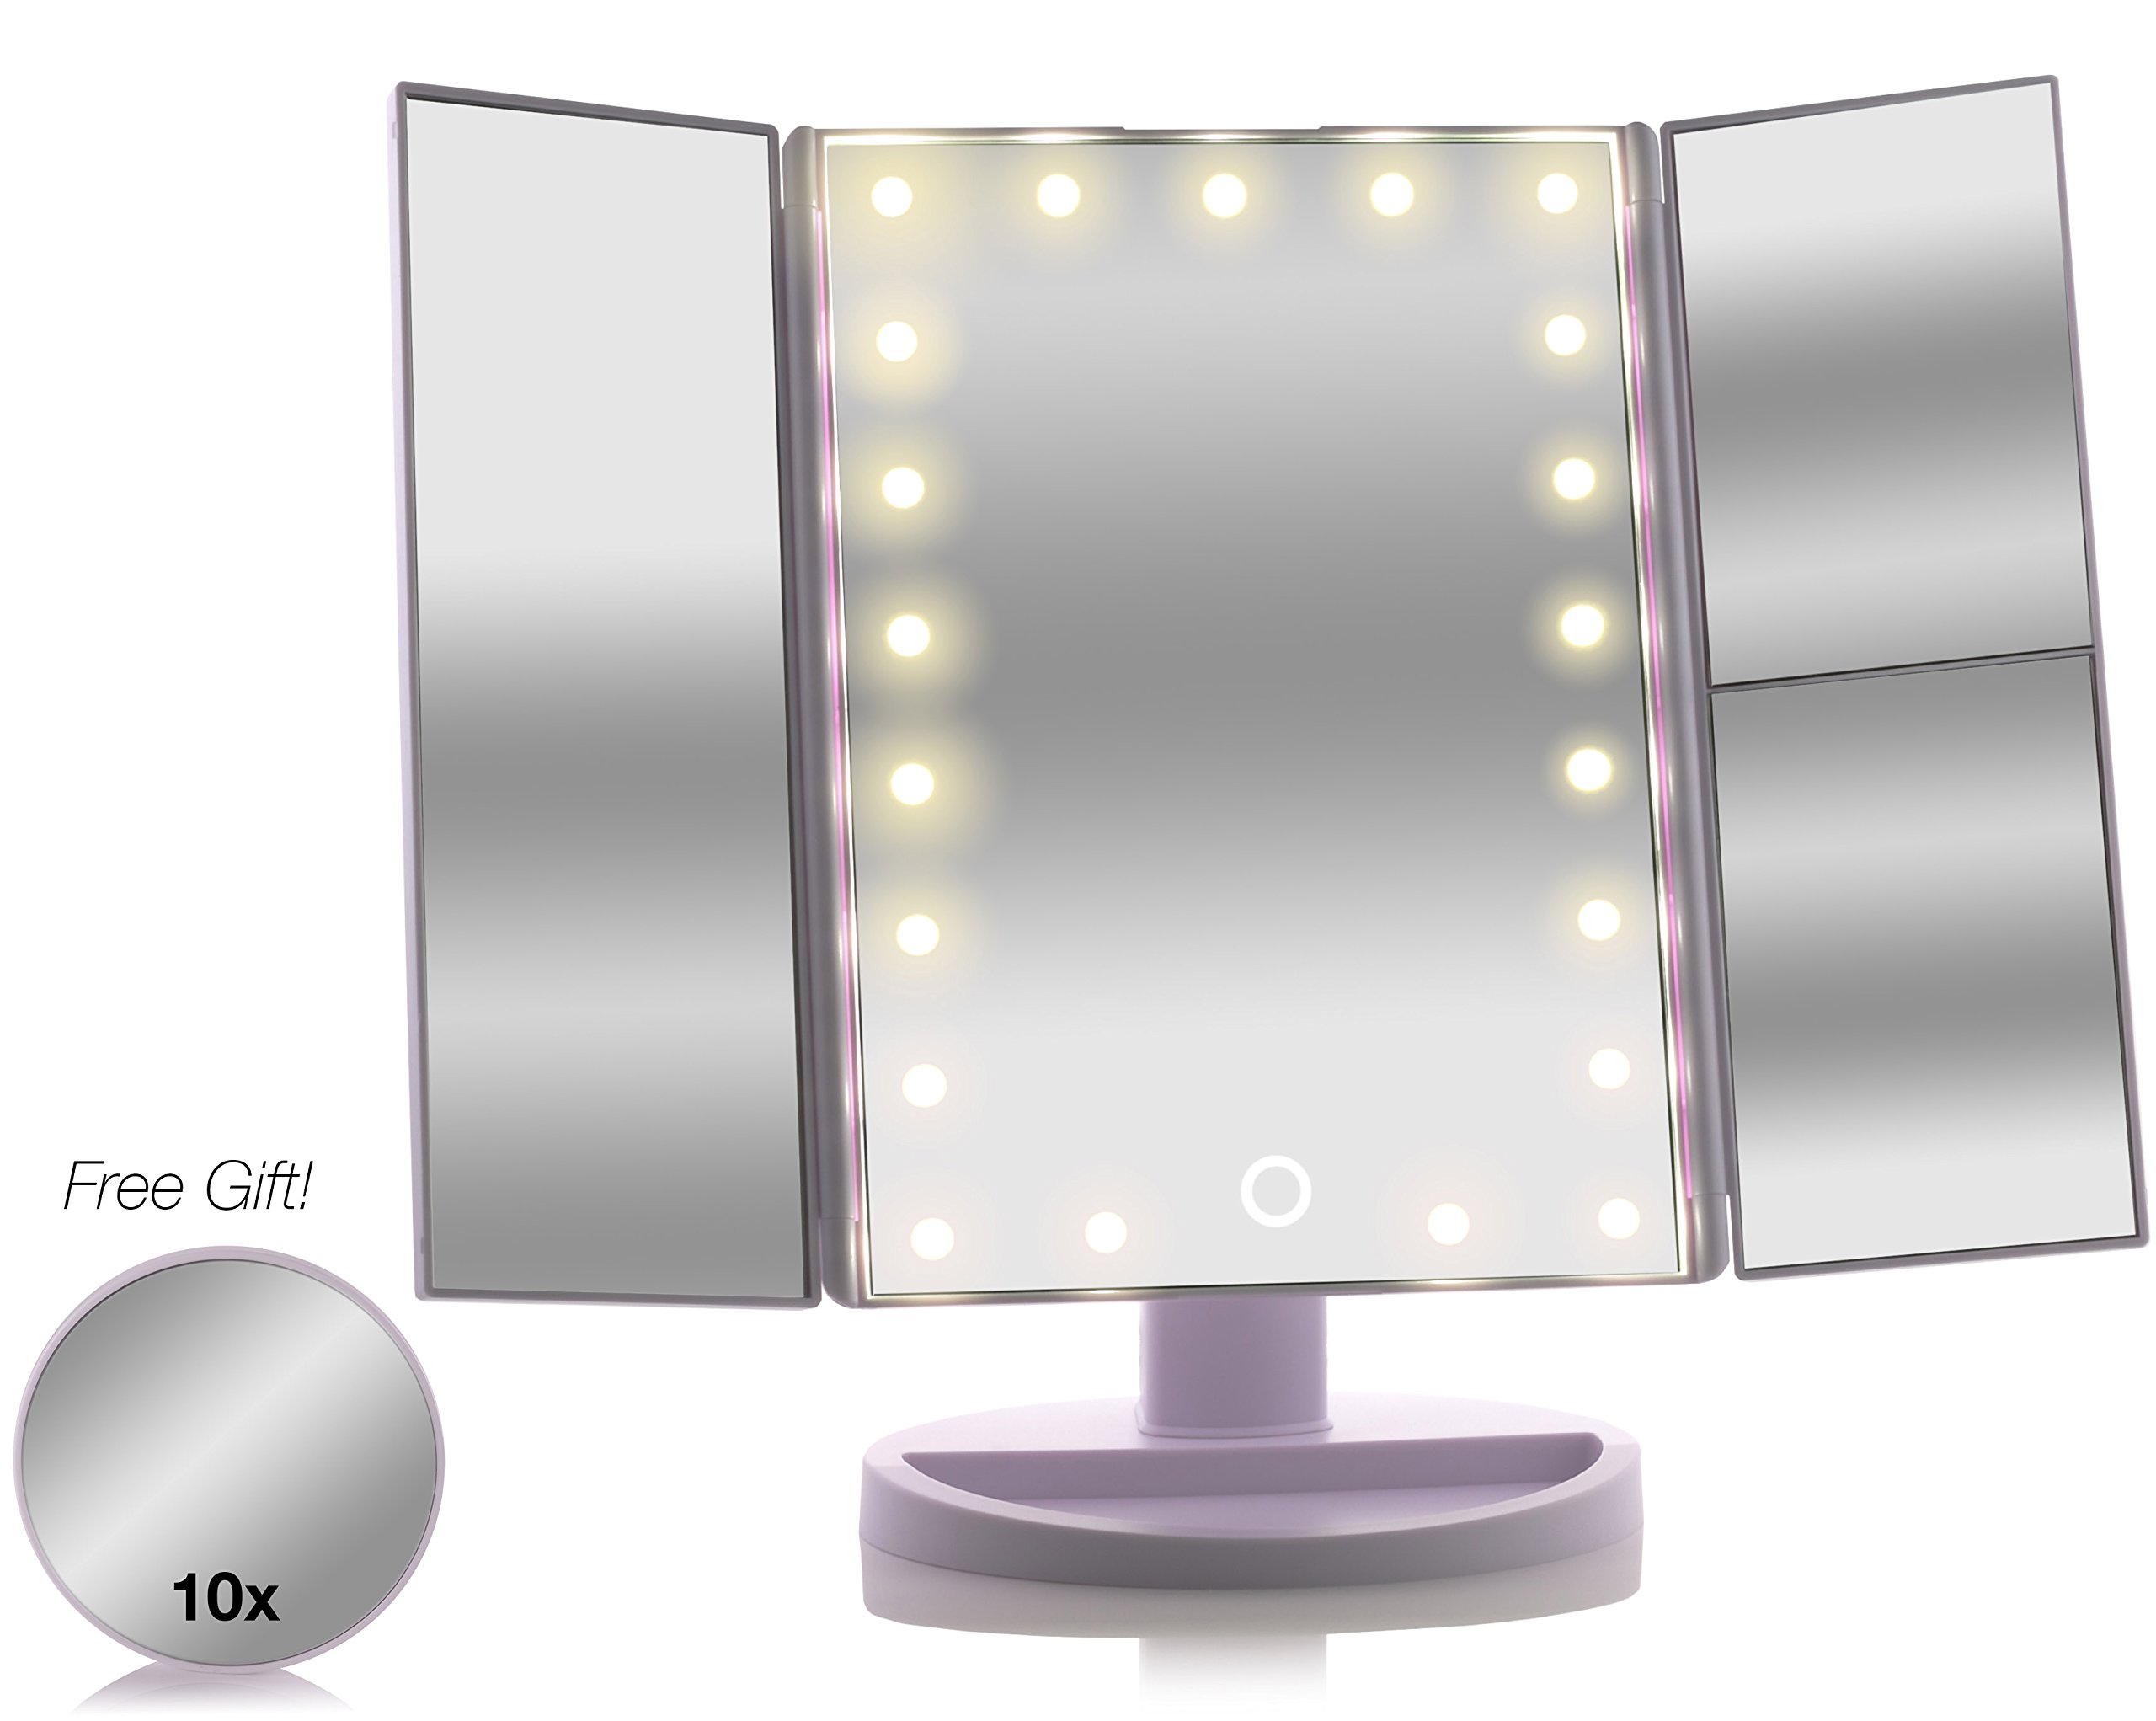 Asani Tri-Fold Lighted Magnification Makeup Mirror with a FREE 10X Spot Mirror   21 LED Lights & Touch Controls   1X / 2X & 3X Magnifying Cosmetic Vanity Folding Mirrors for Dresser and Travel (White)